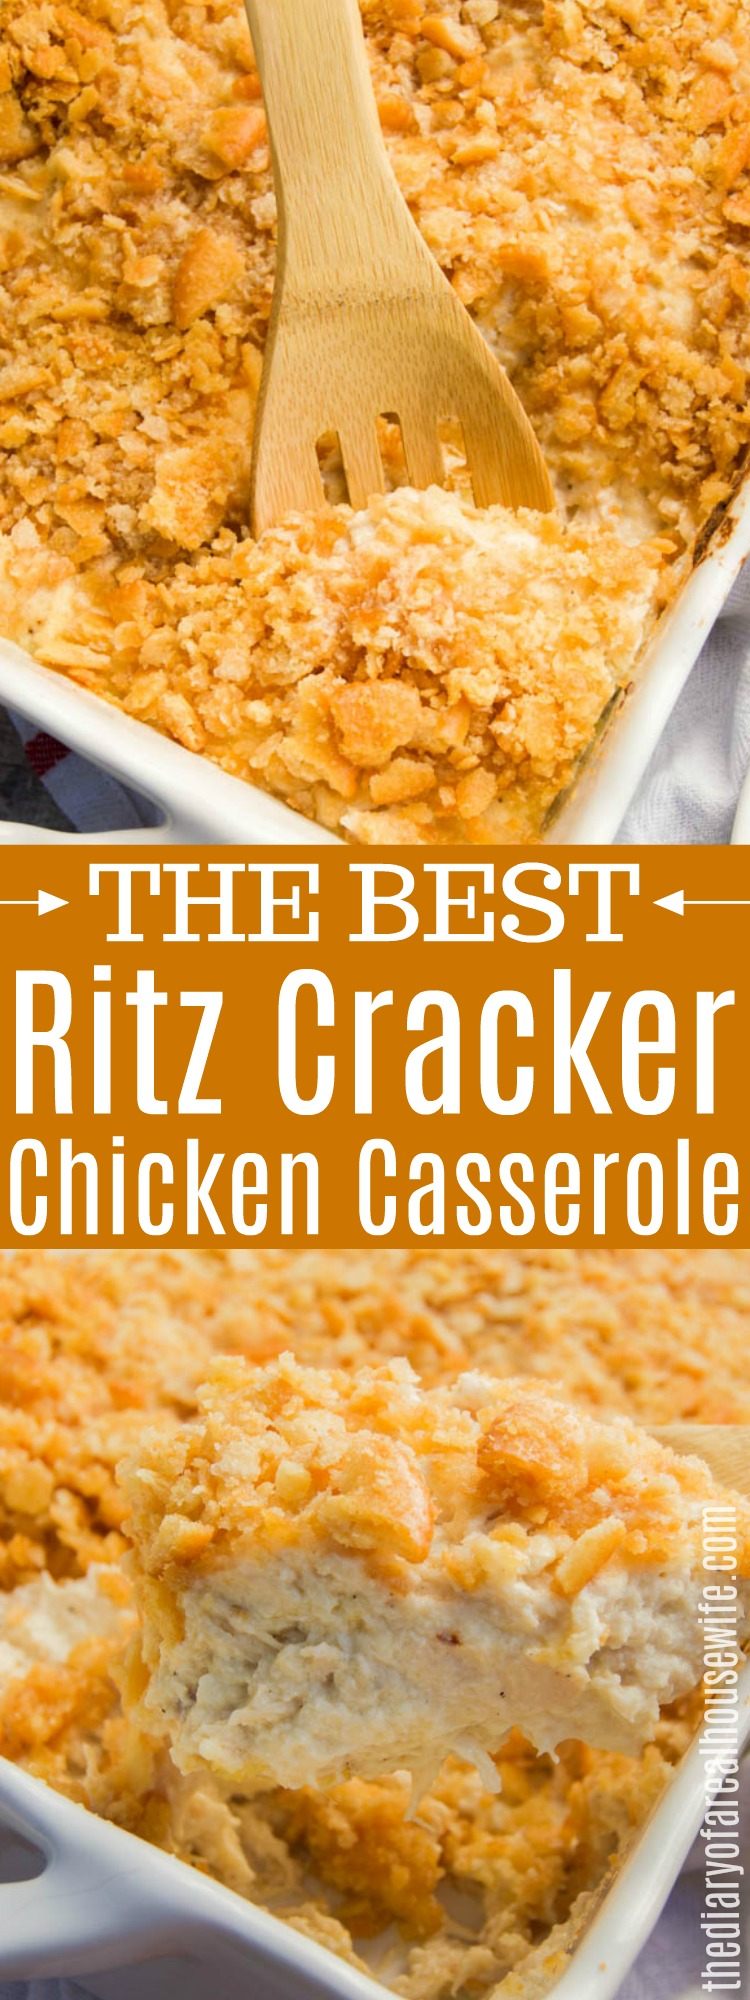 Ritz-Cracker-Chicken-Casserole